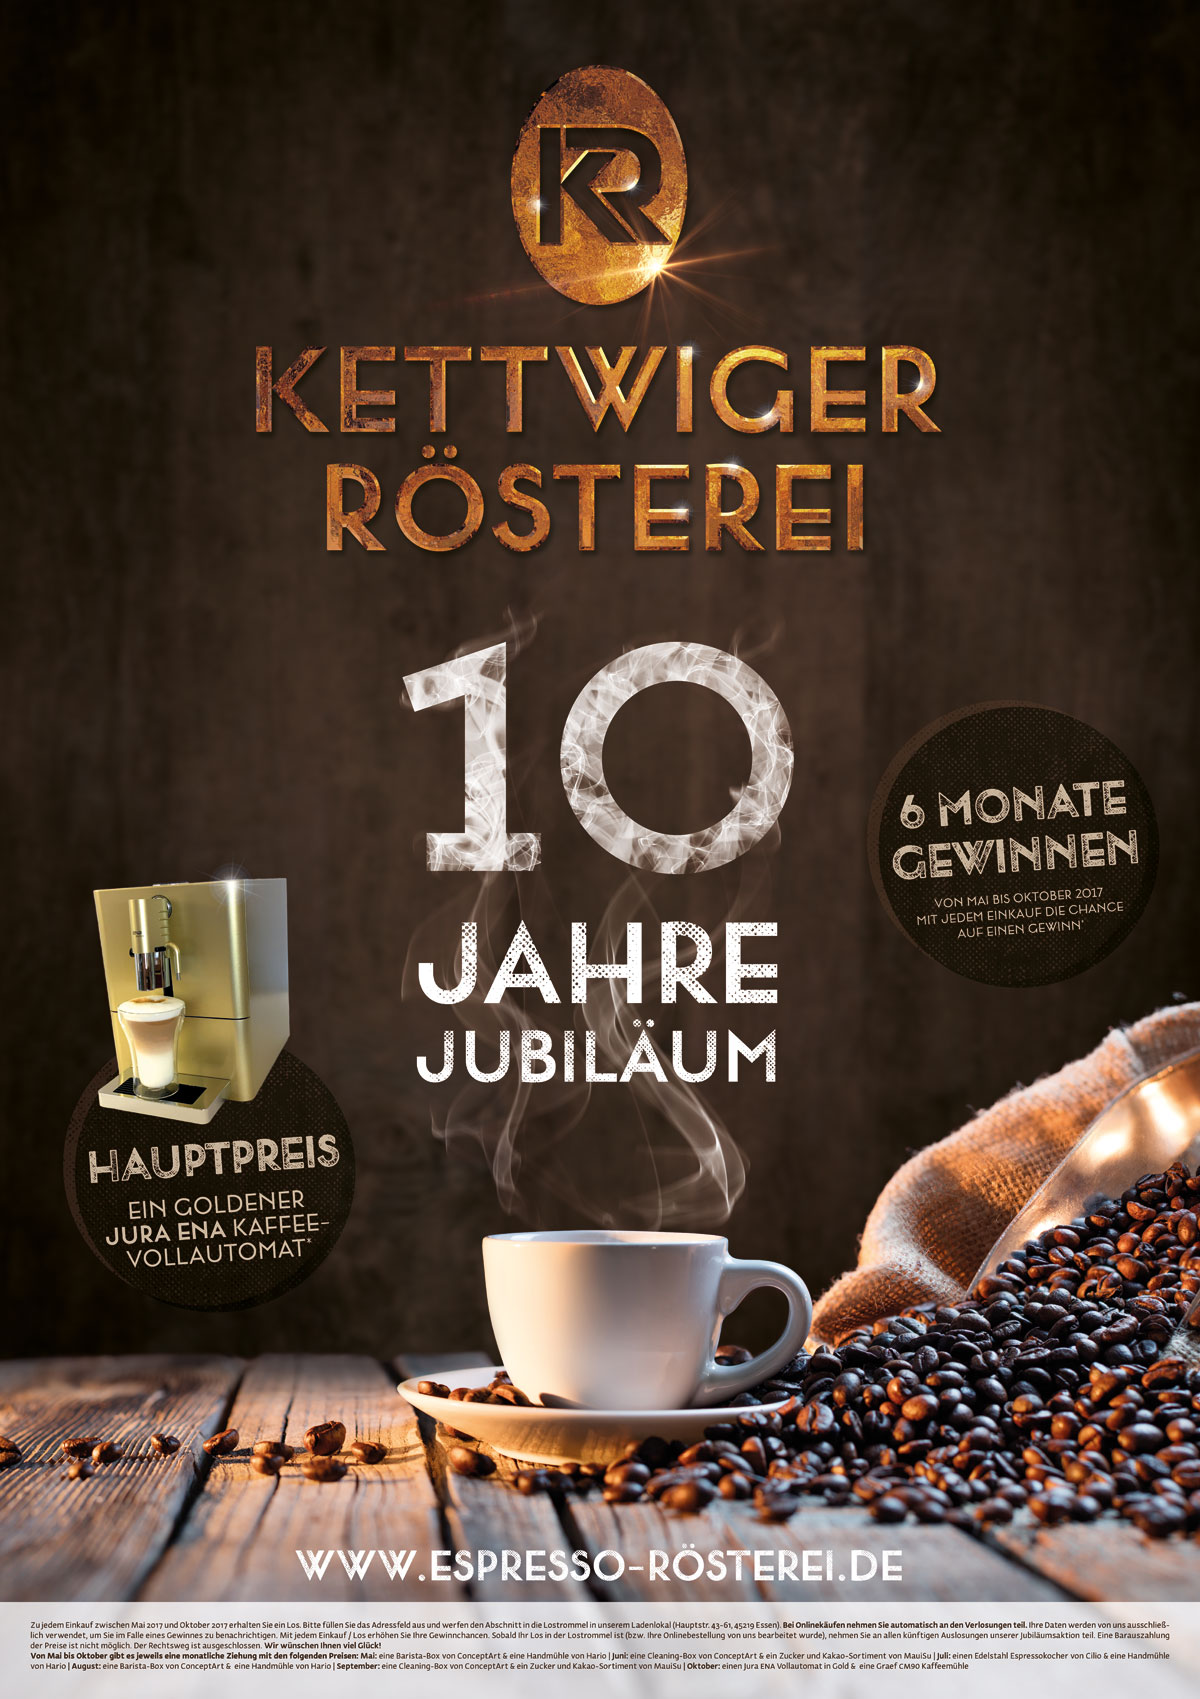 Corporate Design: Kettwiger Rösterei